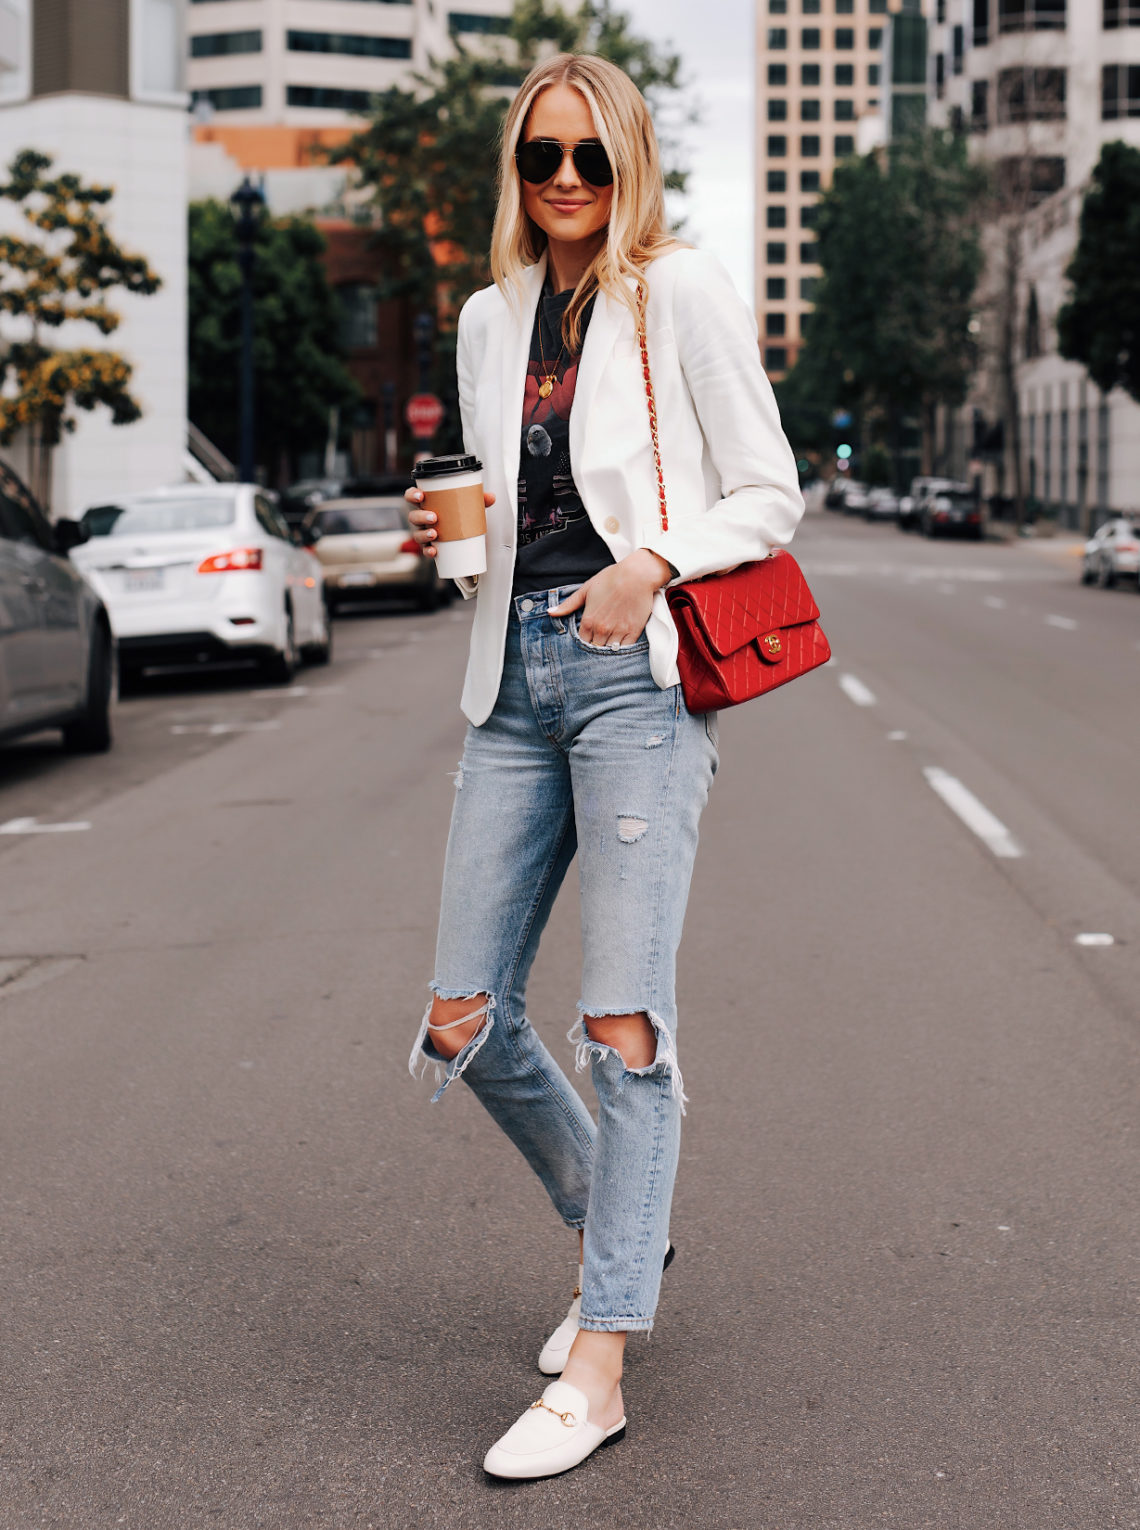 Blonde Woman Wearing White Blazer Anine Bing Graphic Tshirt Boyish Ripped Jeans Red Chanel Handbag Gucci Princetown White Mules Feature Image Fashion Jackson San Diego Fashion Blogger Street Style